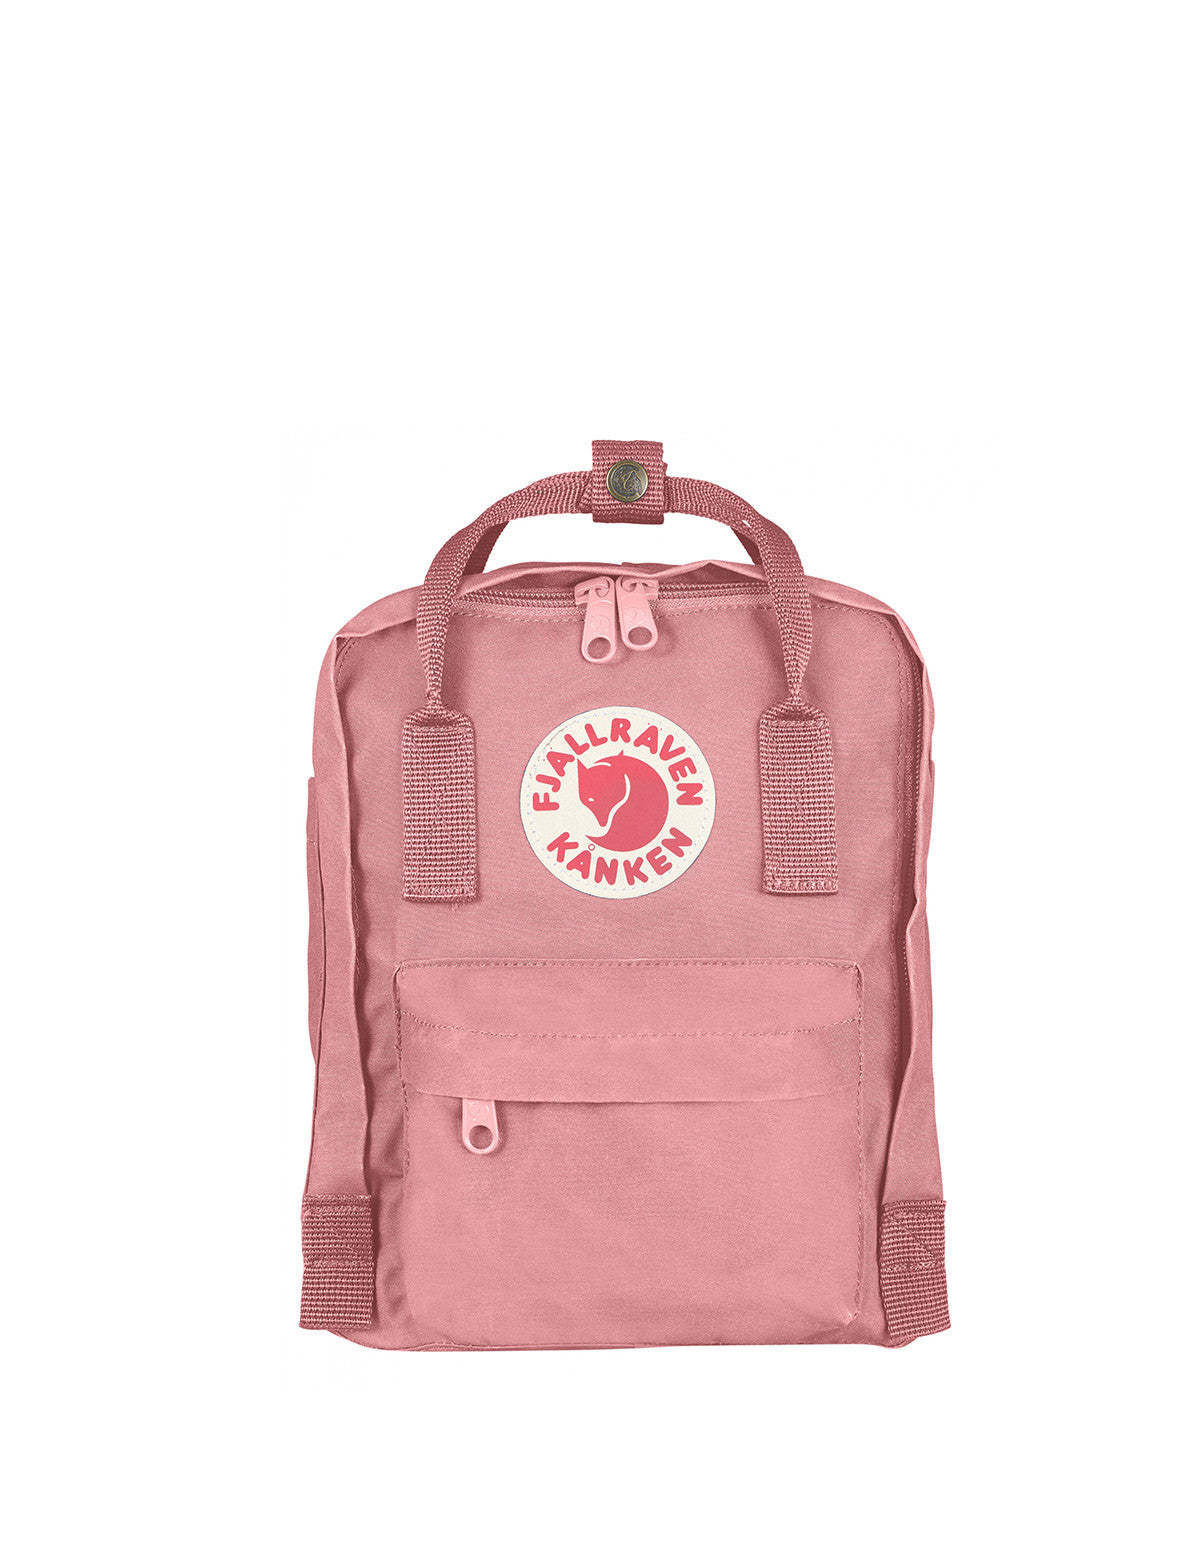 Fjallraven Kanken Mini Backpack Pink - Still Life